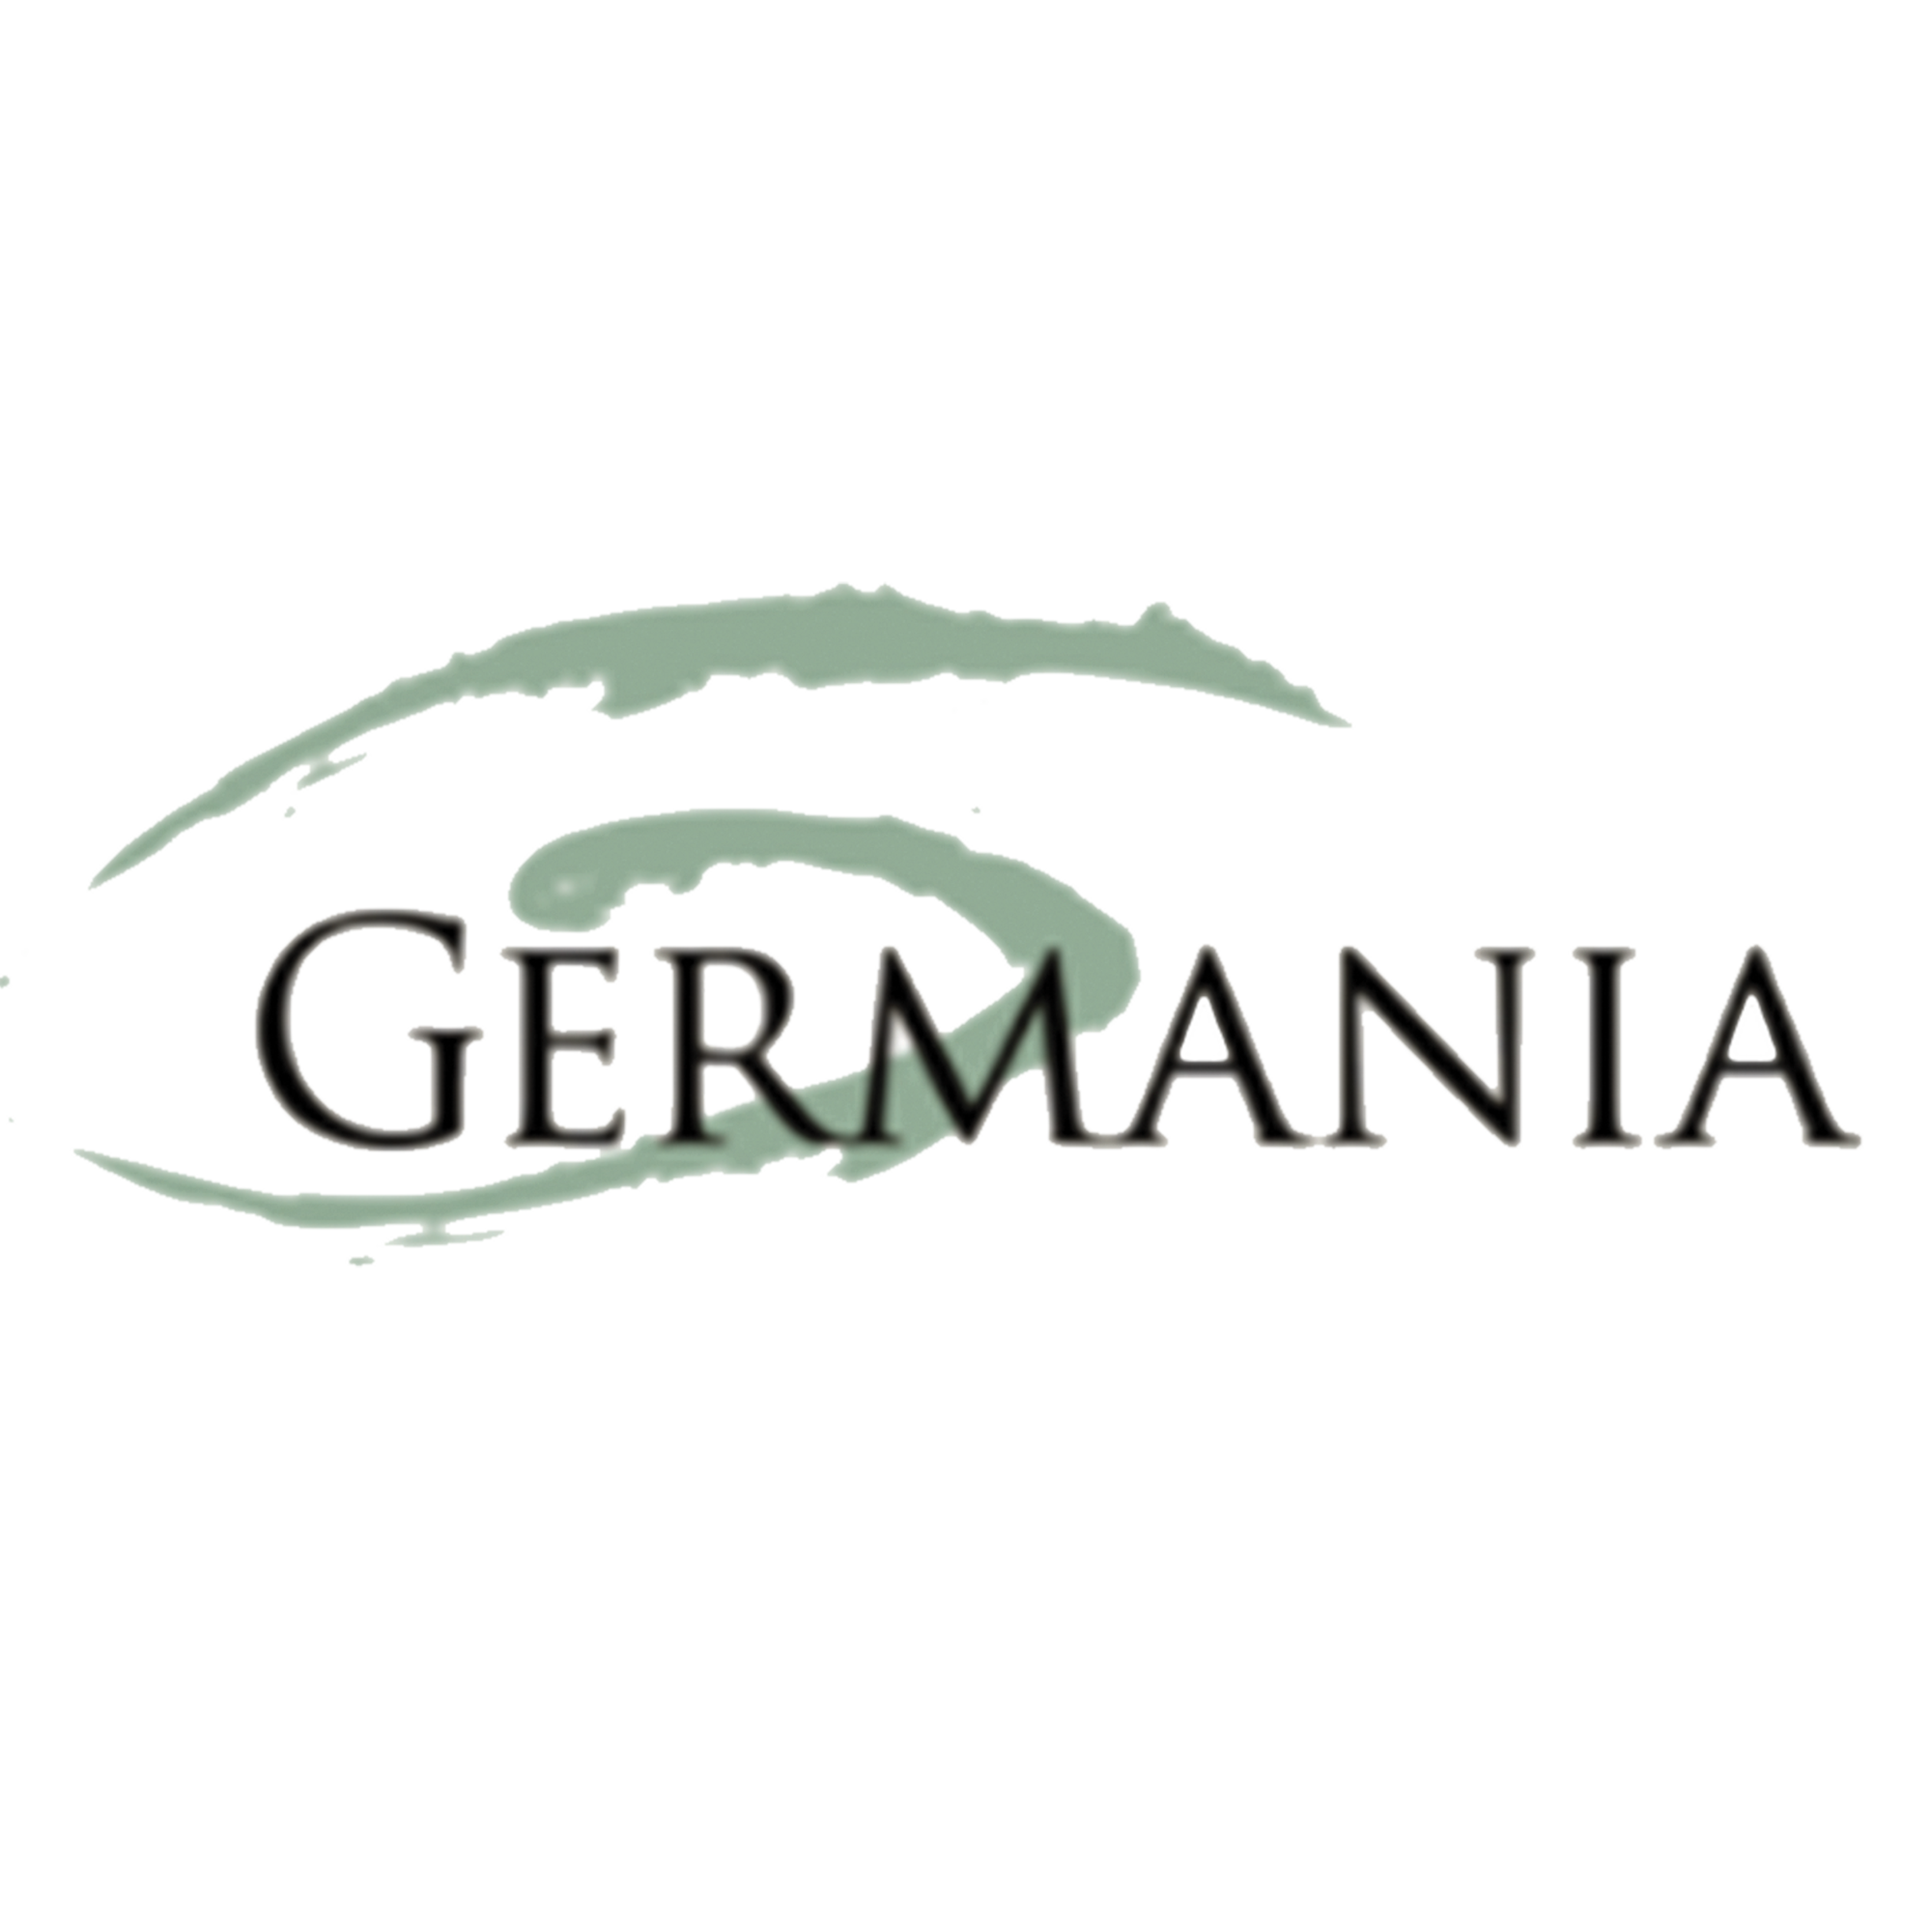 Germania Construction